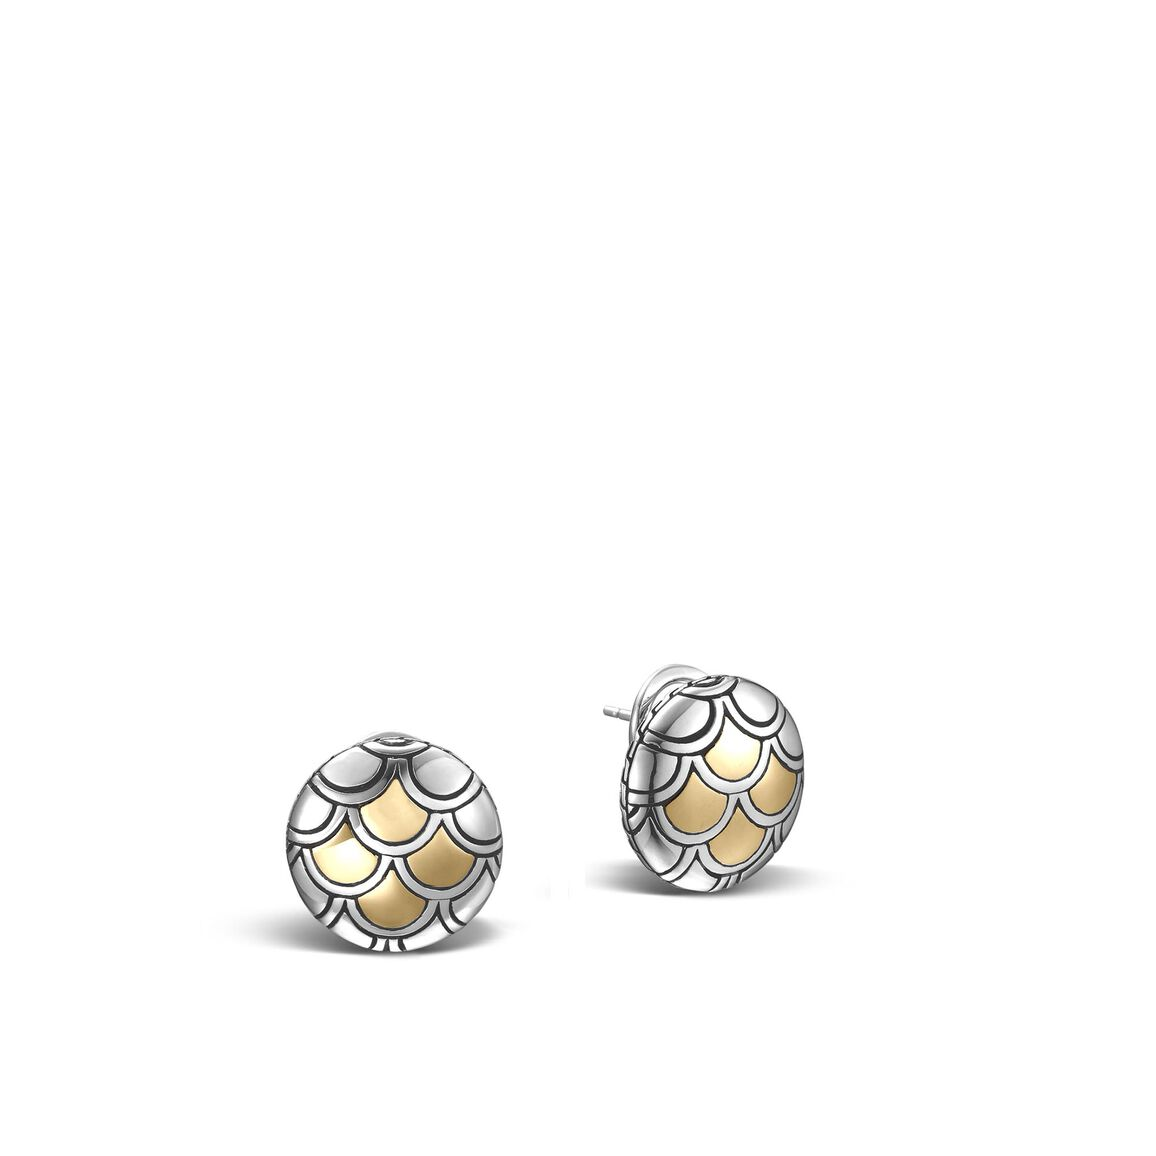 Legends Naga Button Earring in Silver and 18K Gold